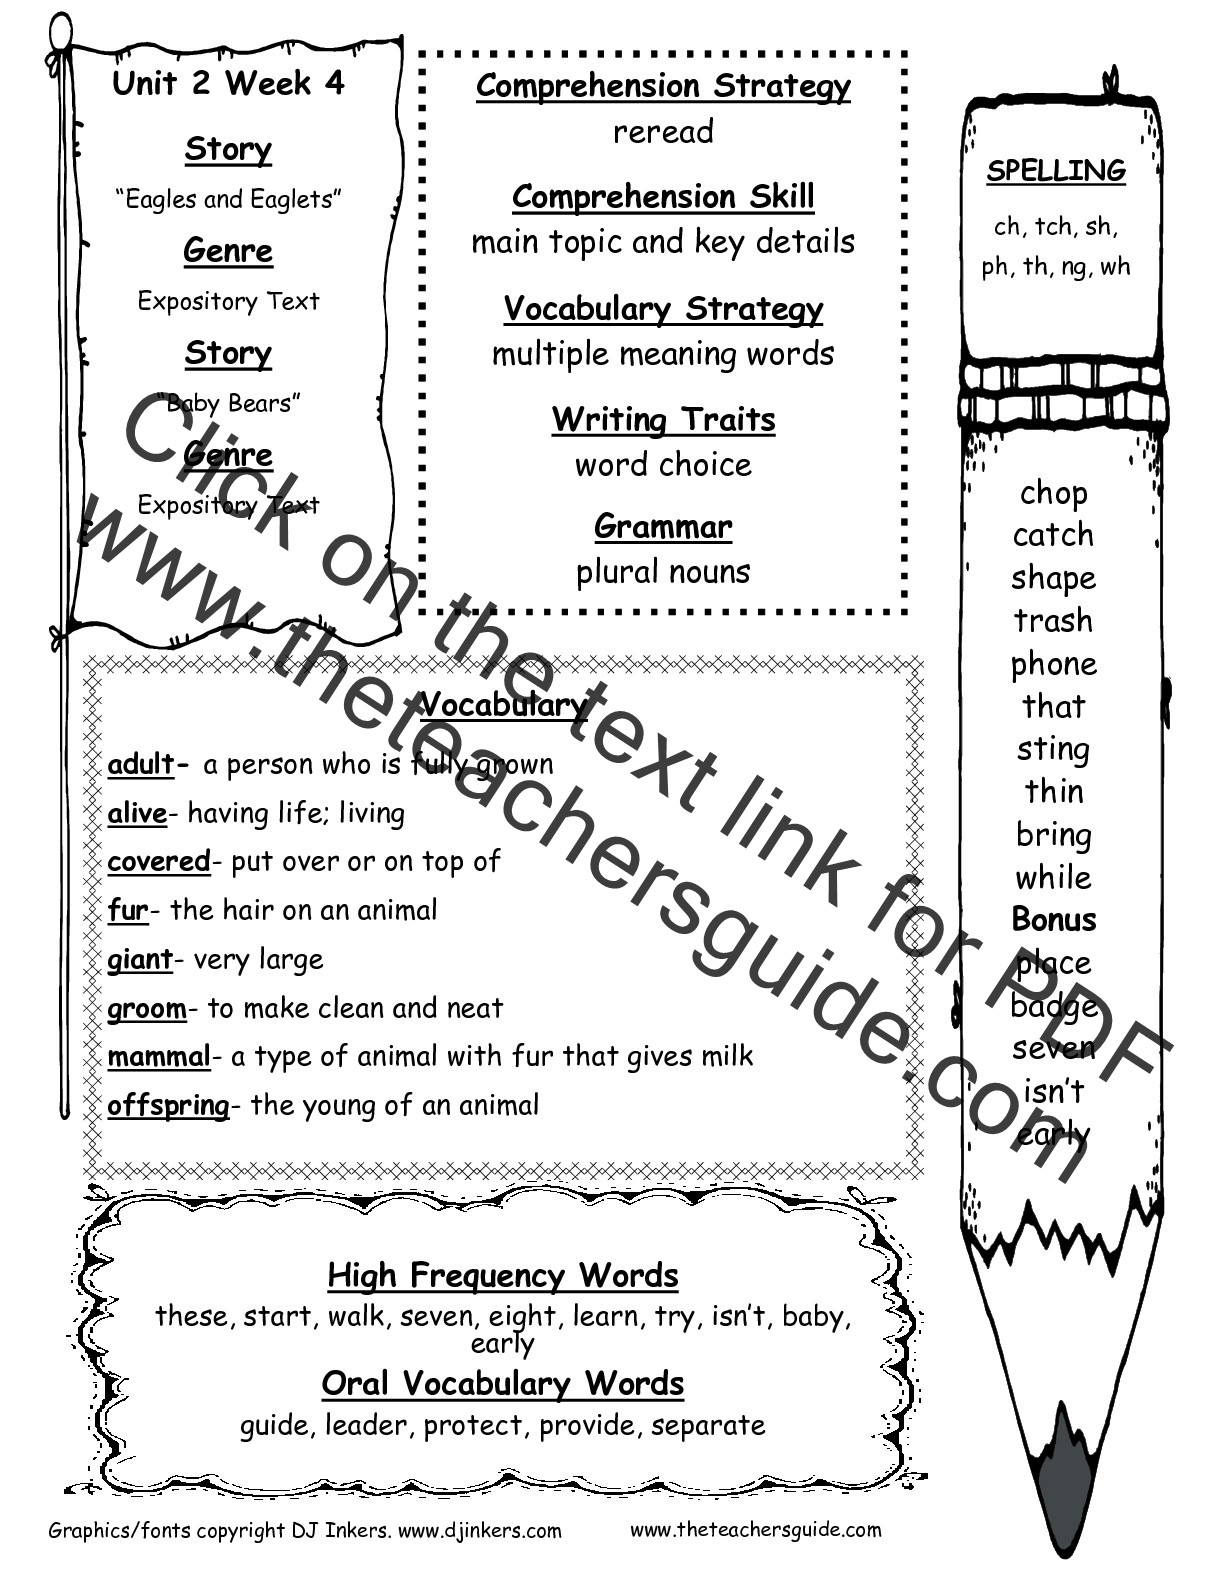 Irregularly Spelled Words 2nd Grade Wonders Second Grade Unit Two Week Four Printouts